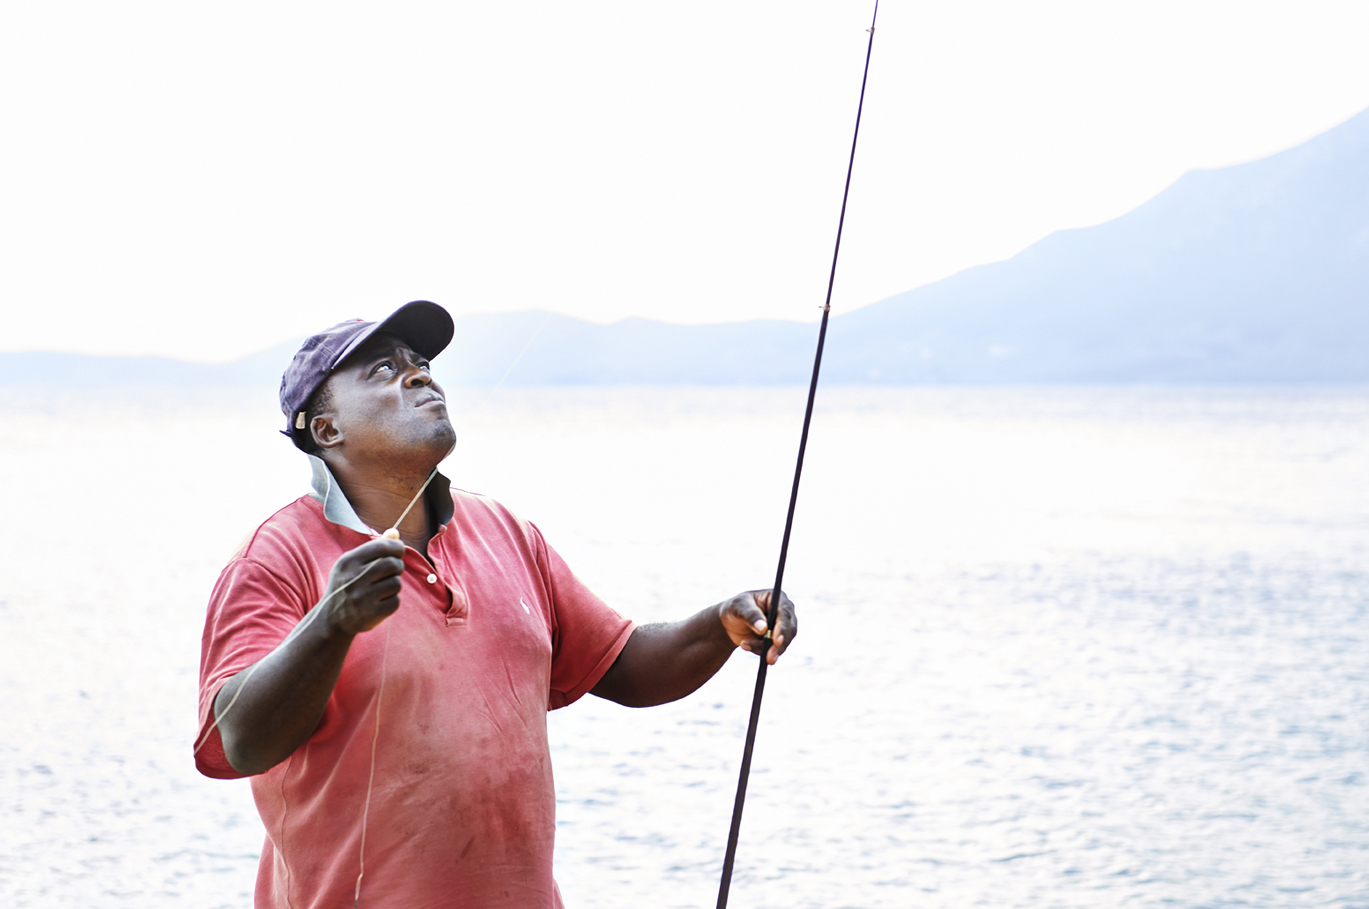 Ernest fishing rod fish fisherman hat shirt baseball t cap pink homemade sea mountains landscape overexposed over exposed  silver island photography photographer food photographer london britain uk recipe cookbook cook book ingredients travel greece sunshine bright vibrant delicious tasty method trees rustic daylight